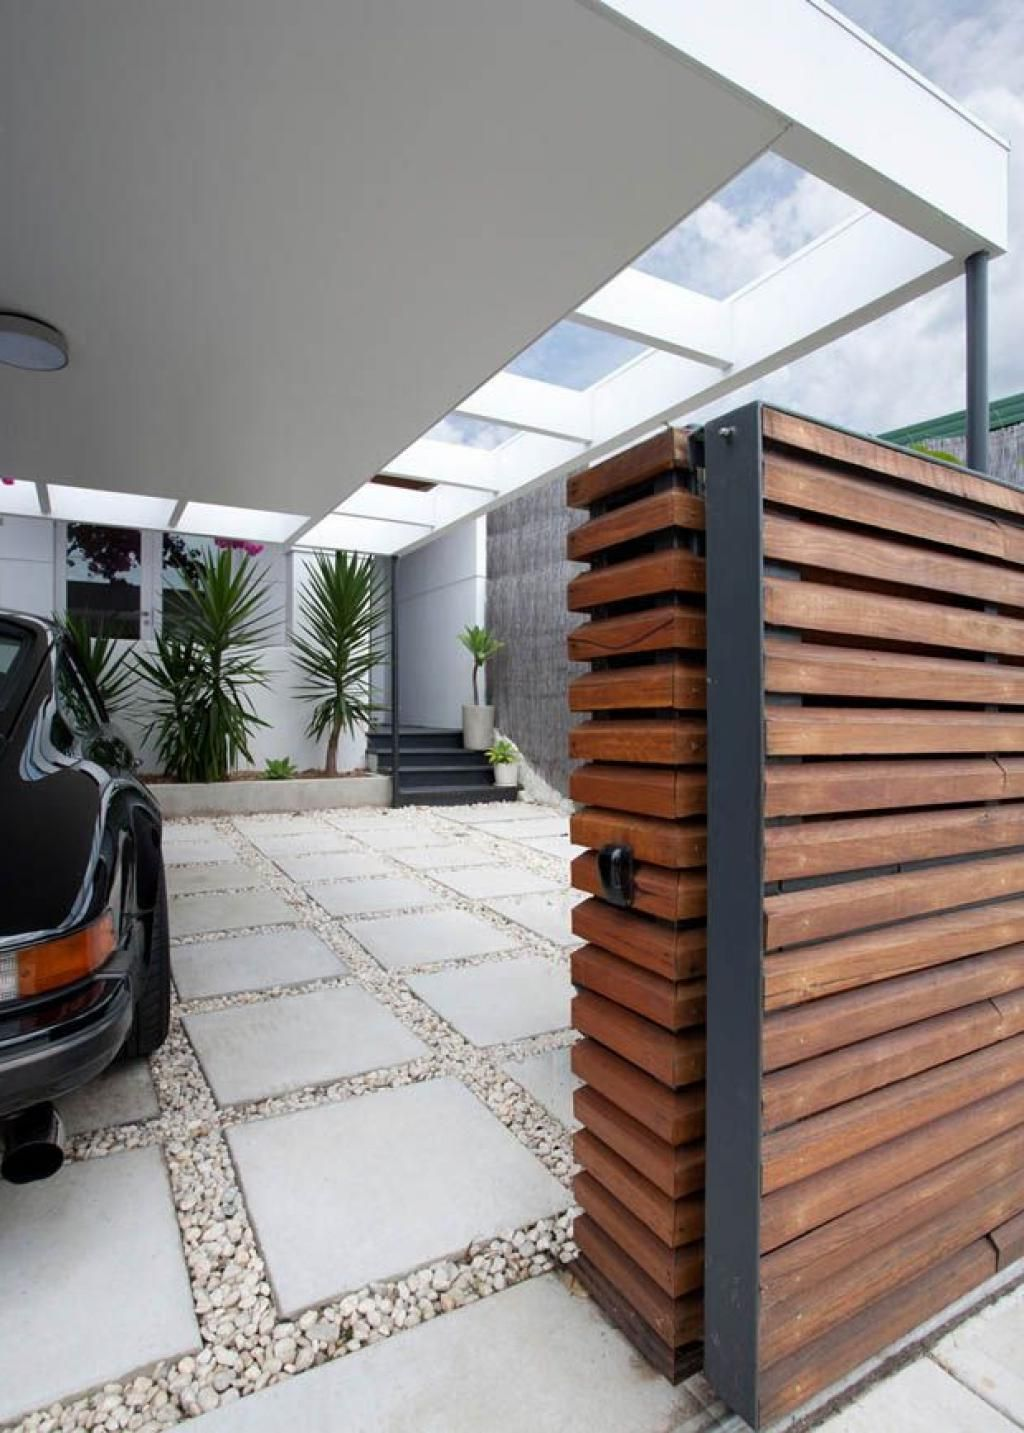 Wooden Gate And The Modern Carport For The Moder House Design Carport Designs Modern Carport Car Porch Design